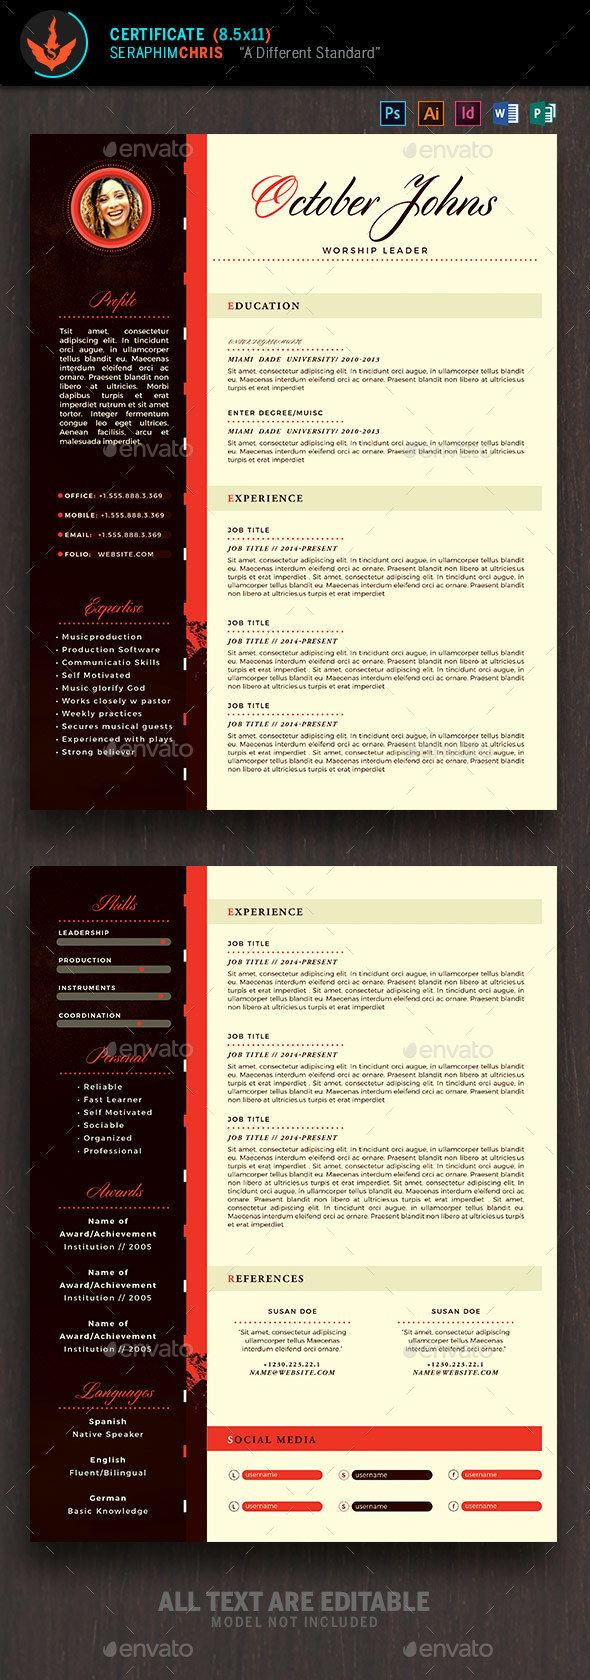 King Modern Church Resume Template  Modern Church Template And